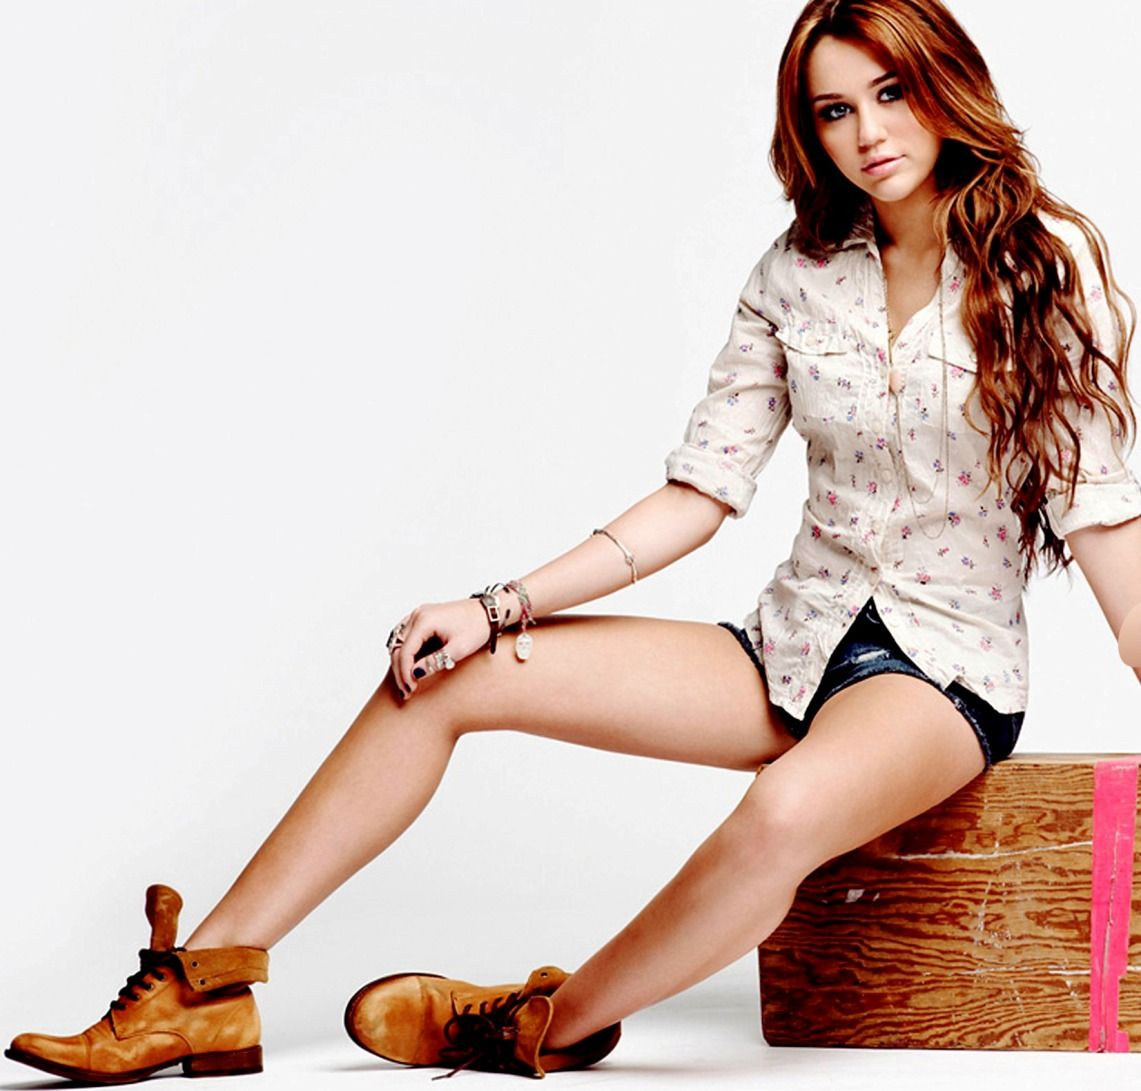 Miley Cyrus: Miley Cyrus New HD Wallpapers 2013